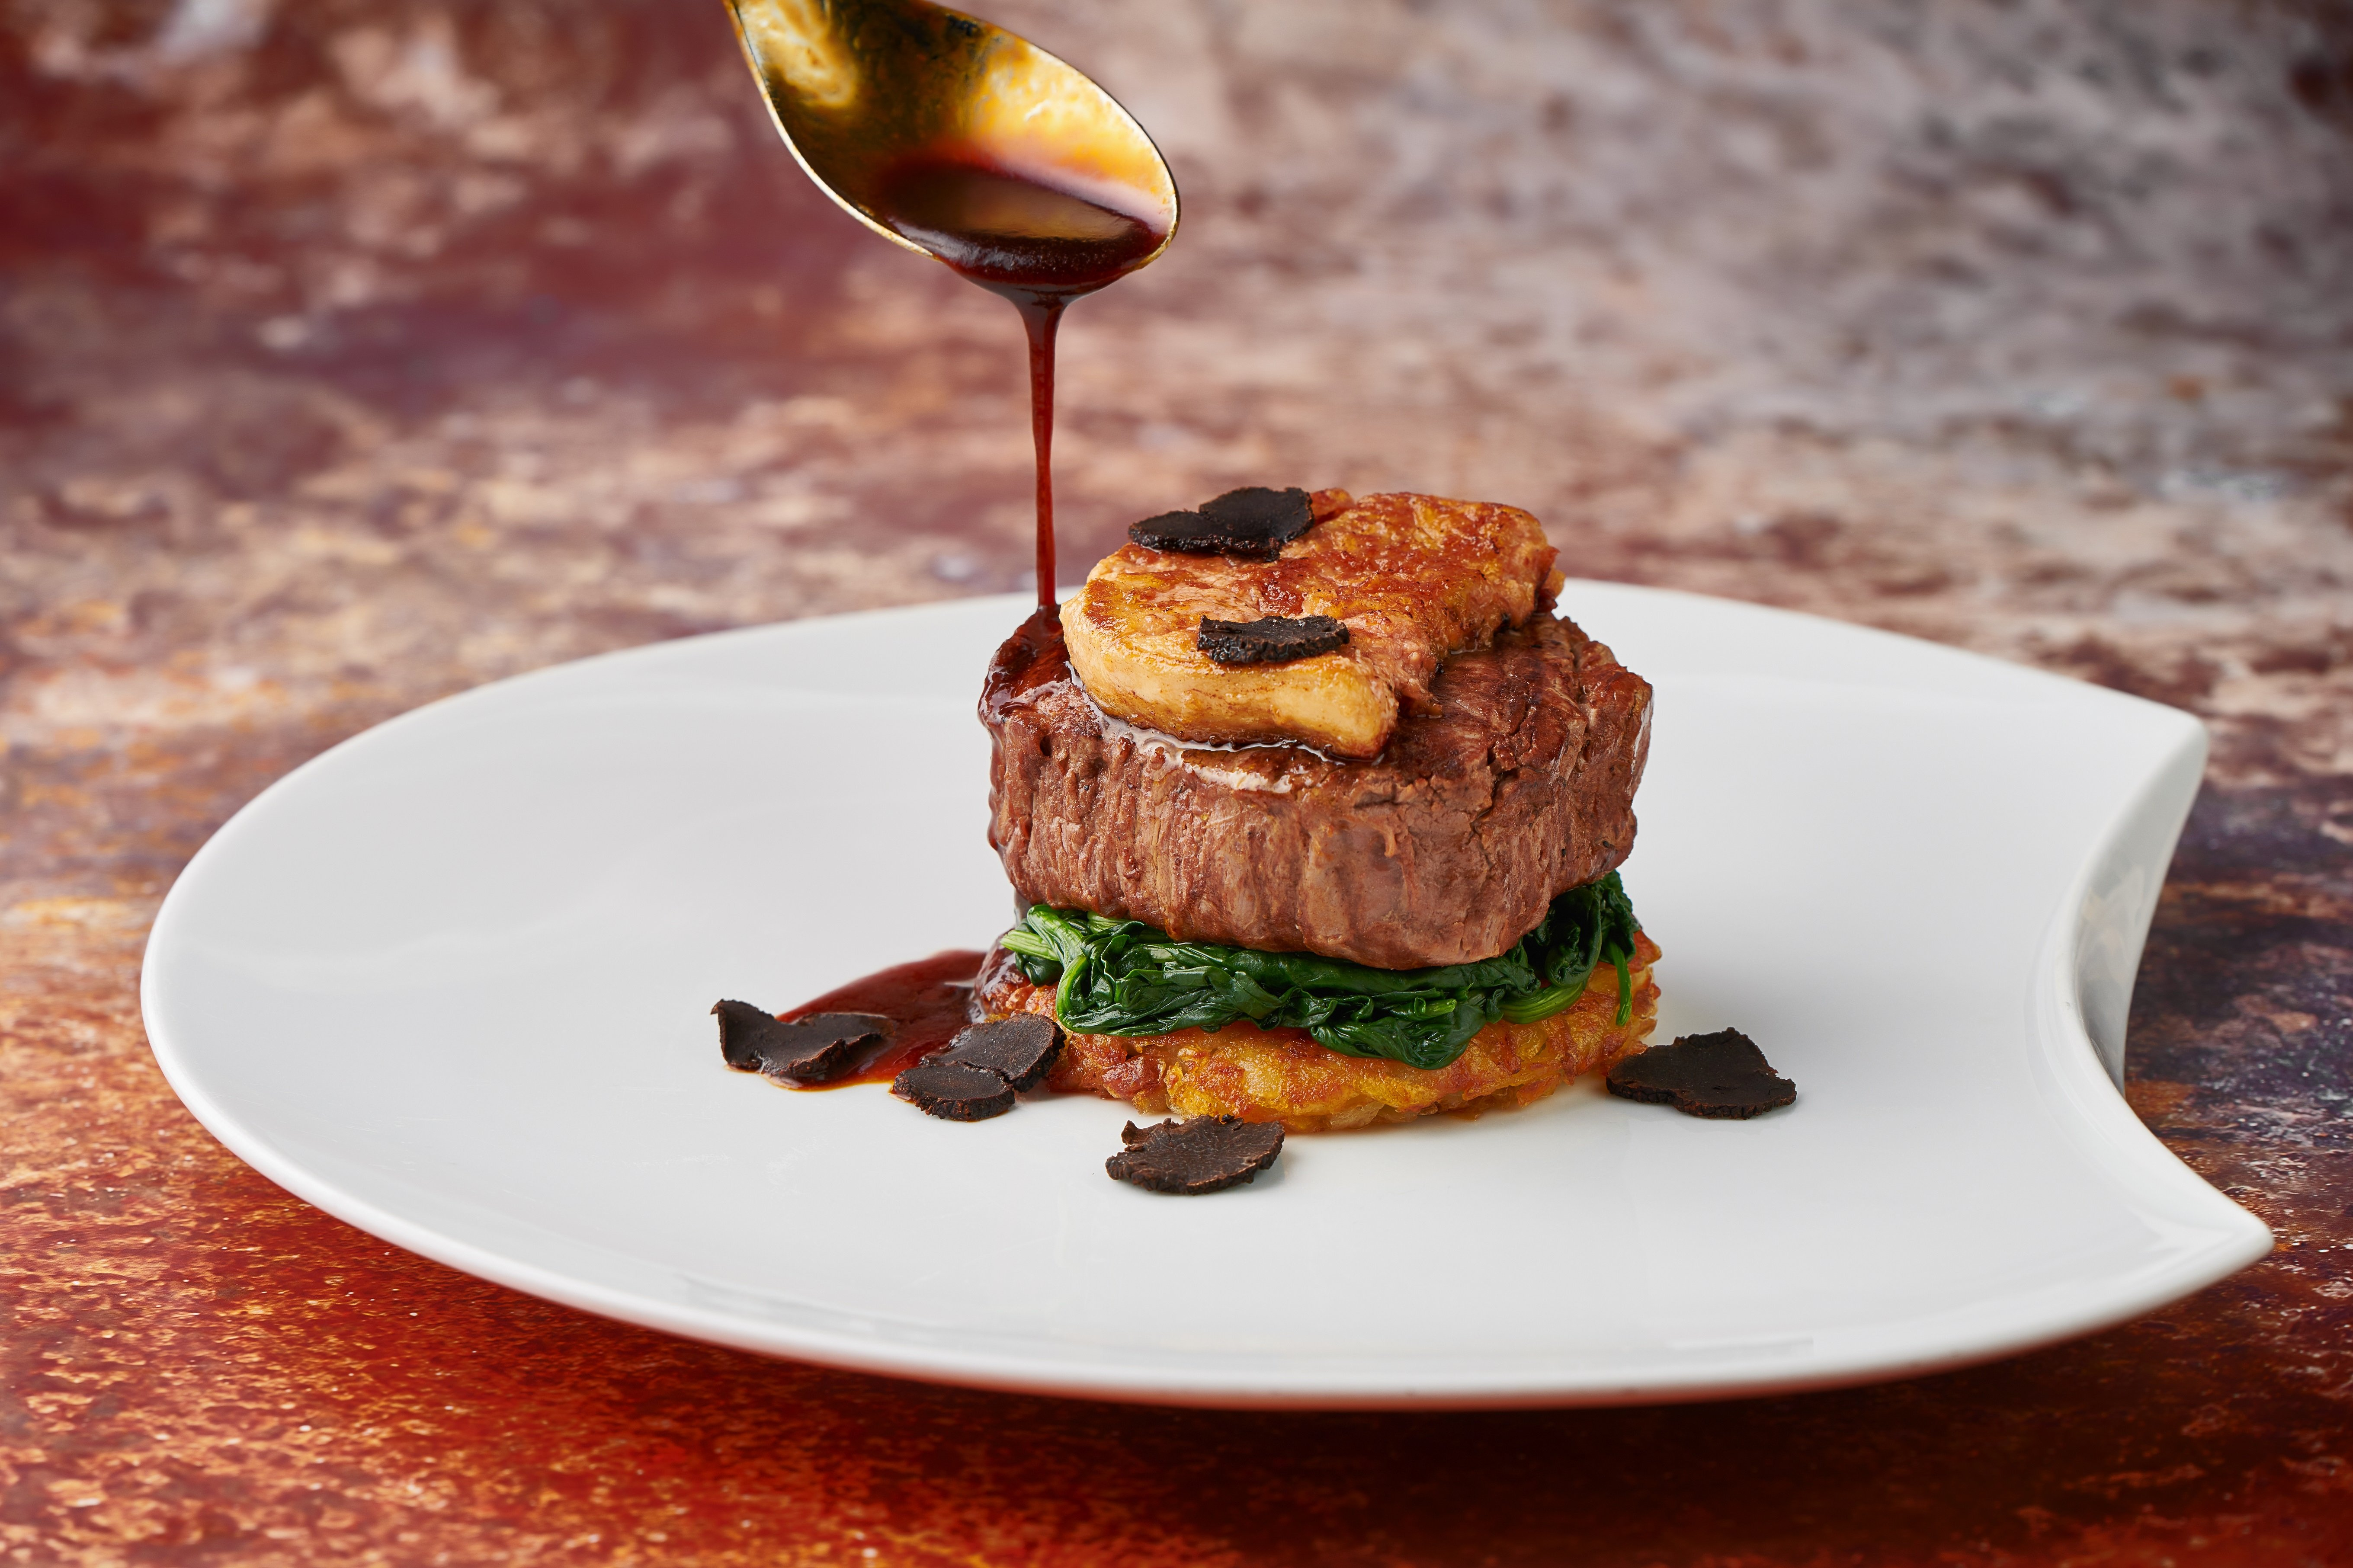 "Angus KILLARA M beef tenderloin ""alla Rossini"", rosti potato, spinach, seared duck foie gras, Yunnan black truffle, red wine sauce 罗西尼风味烤澳洲KILLARA M 牛柳,煎鸭肝,土豆饼,菠菜,云南黑松露,红酒汁"